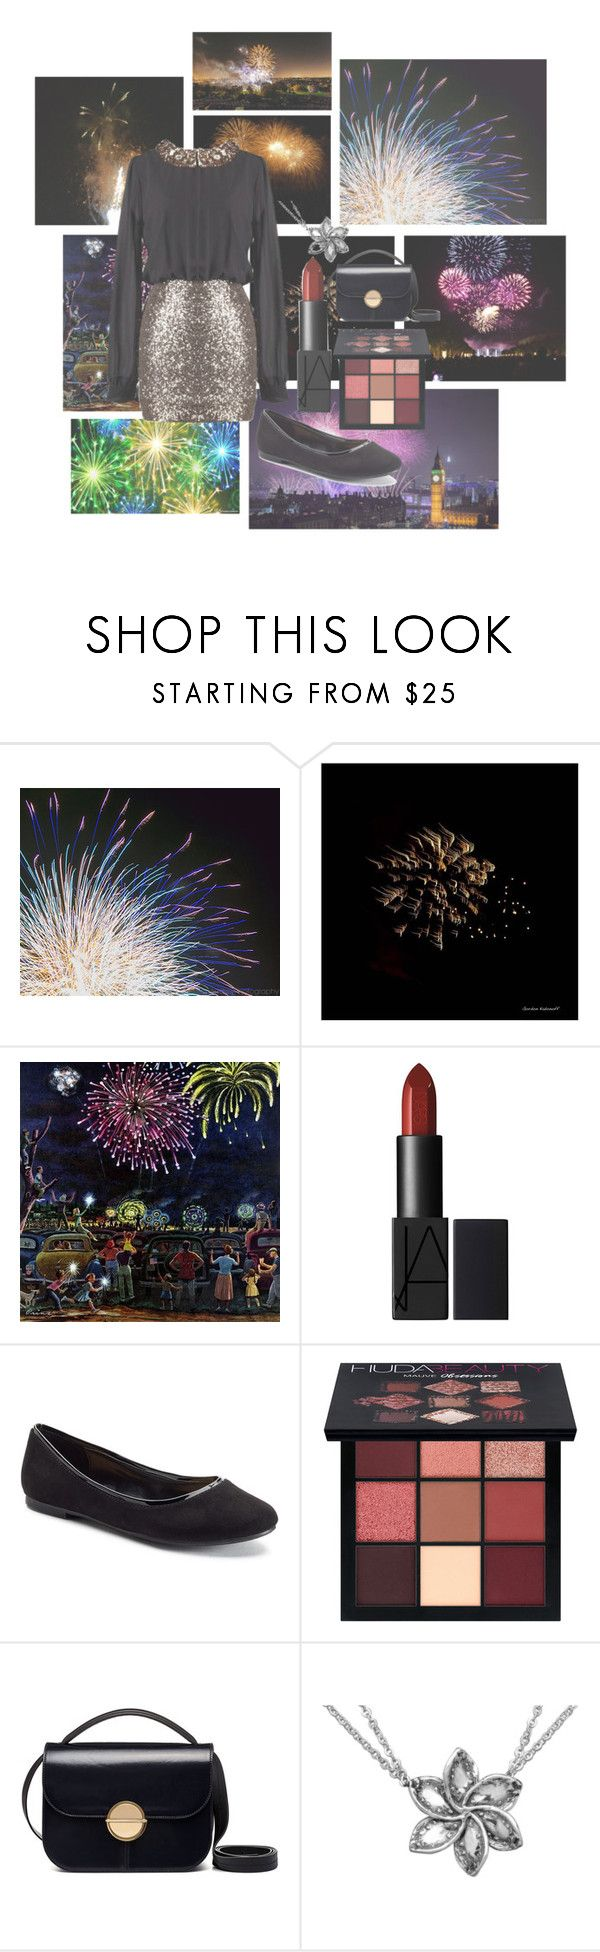 """""""HAPPY NEW YEAR! 🎉🎆🎇✨💫"""" by fashionistax23 ❤ liked on Polyvore featuring Gordon Kadonoff, Marmont Hill, LC Lauren Conrad, Huda Beauty and Marni"""